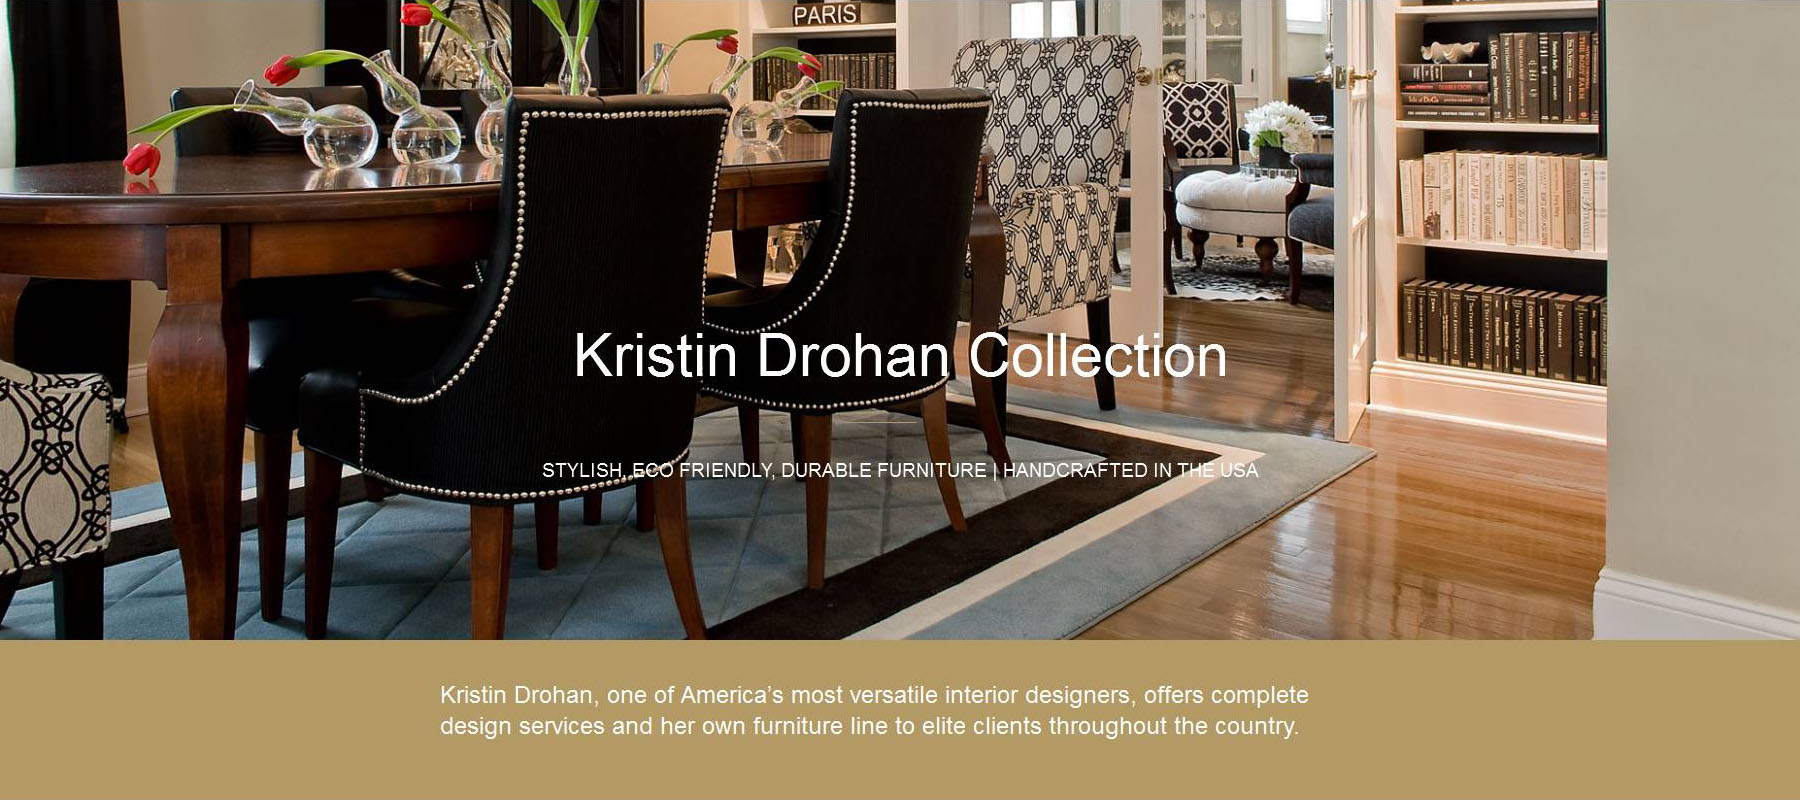 Stylish Eco Friendly Durable Furniture And Interior Design Proudly Made In The Usa The Kristin Drohan Collection